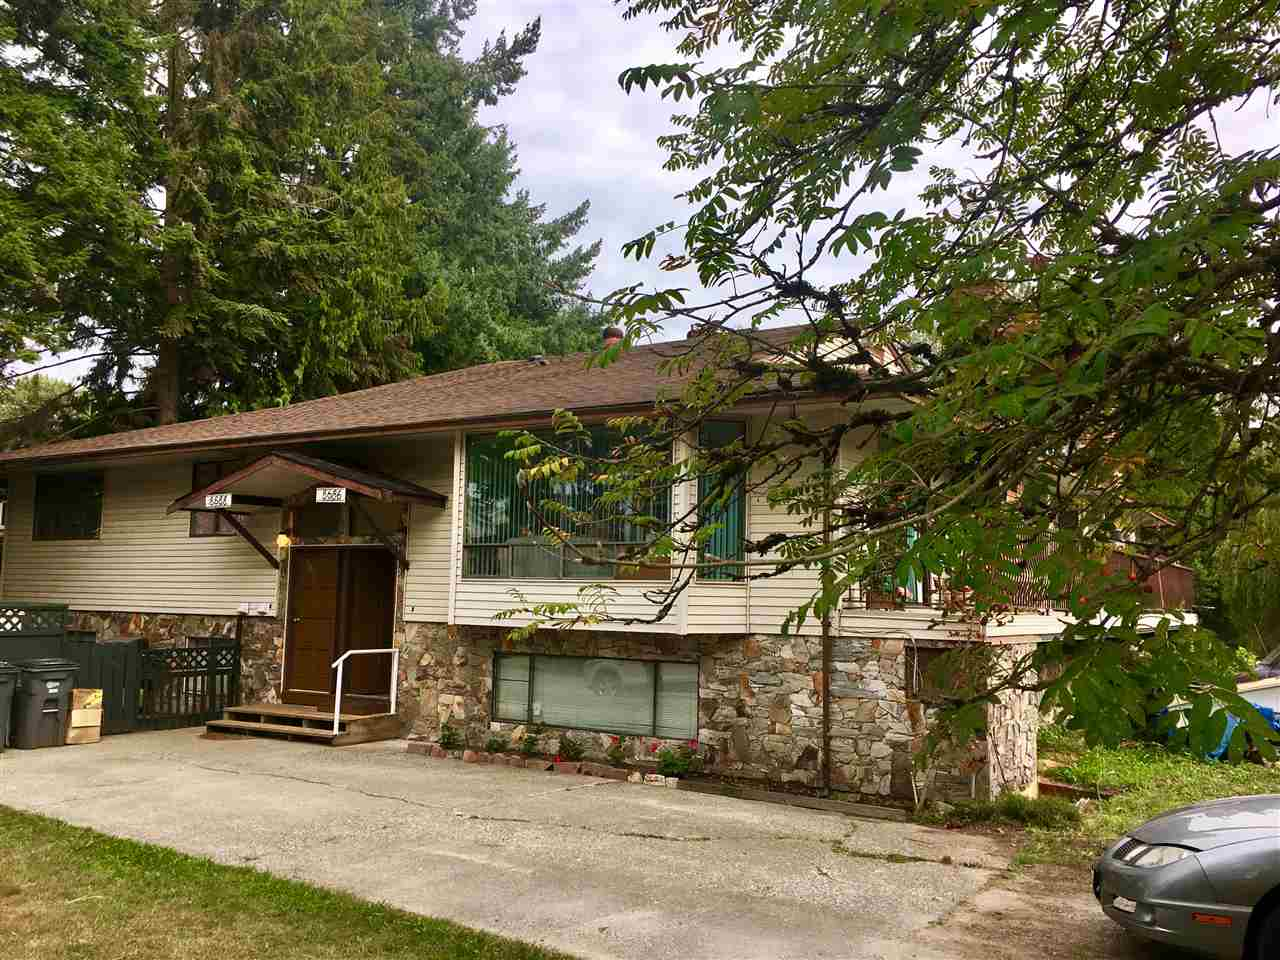 Bear Creek Estates - Large 3 bedroom, 2 full bath townhome located in a unique low density, 13 unit strata property on a private circular street. This is a lovely suite with 2 bay windows & a large deck off the livingroom. New Laminate Flooring looks stunning, main bathroom has a $15,000.00 jacuzzi walk in tub. Low maintenance fee of $134.00pm. Celebrate with your family & friends in the 'Park' outside your front door with plenty of parking for everyone. Located across the street from Bear Creek Park & is walking distance to transit, shopping & schools - Great location!